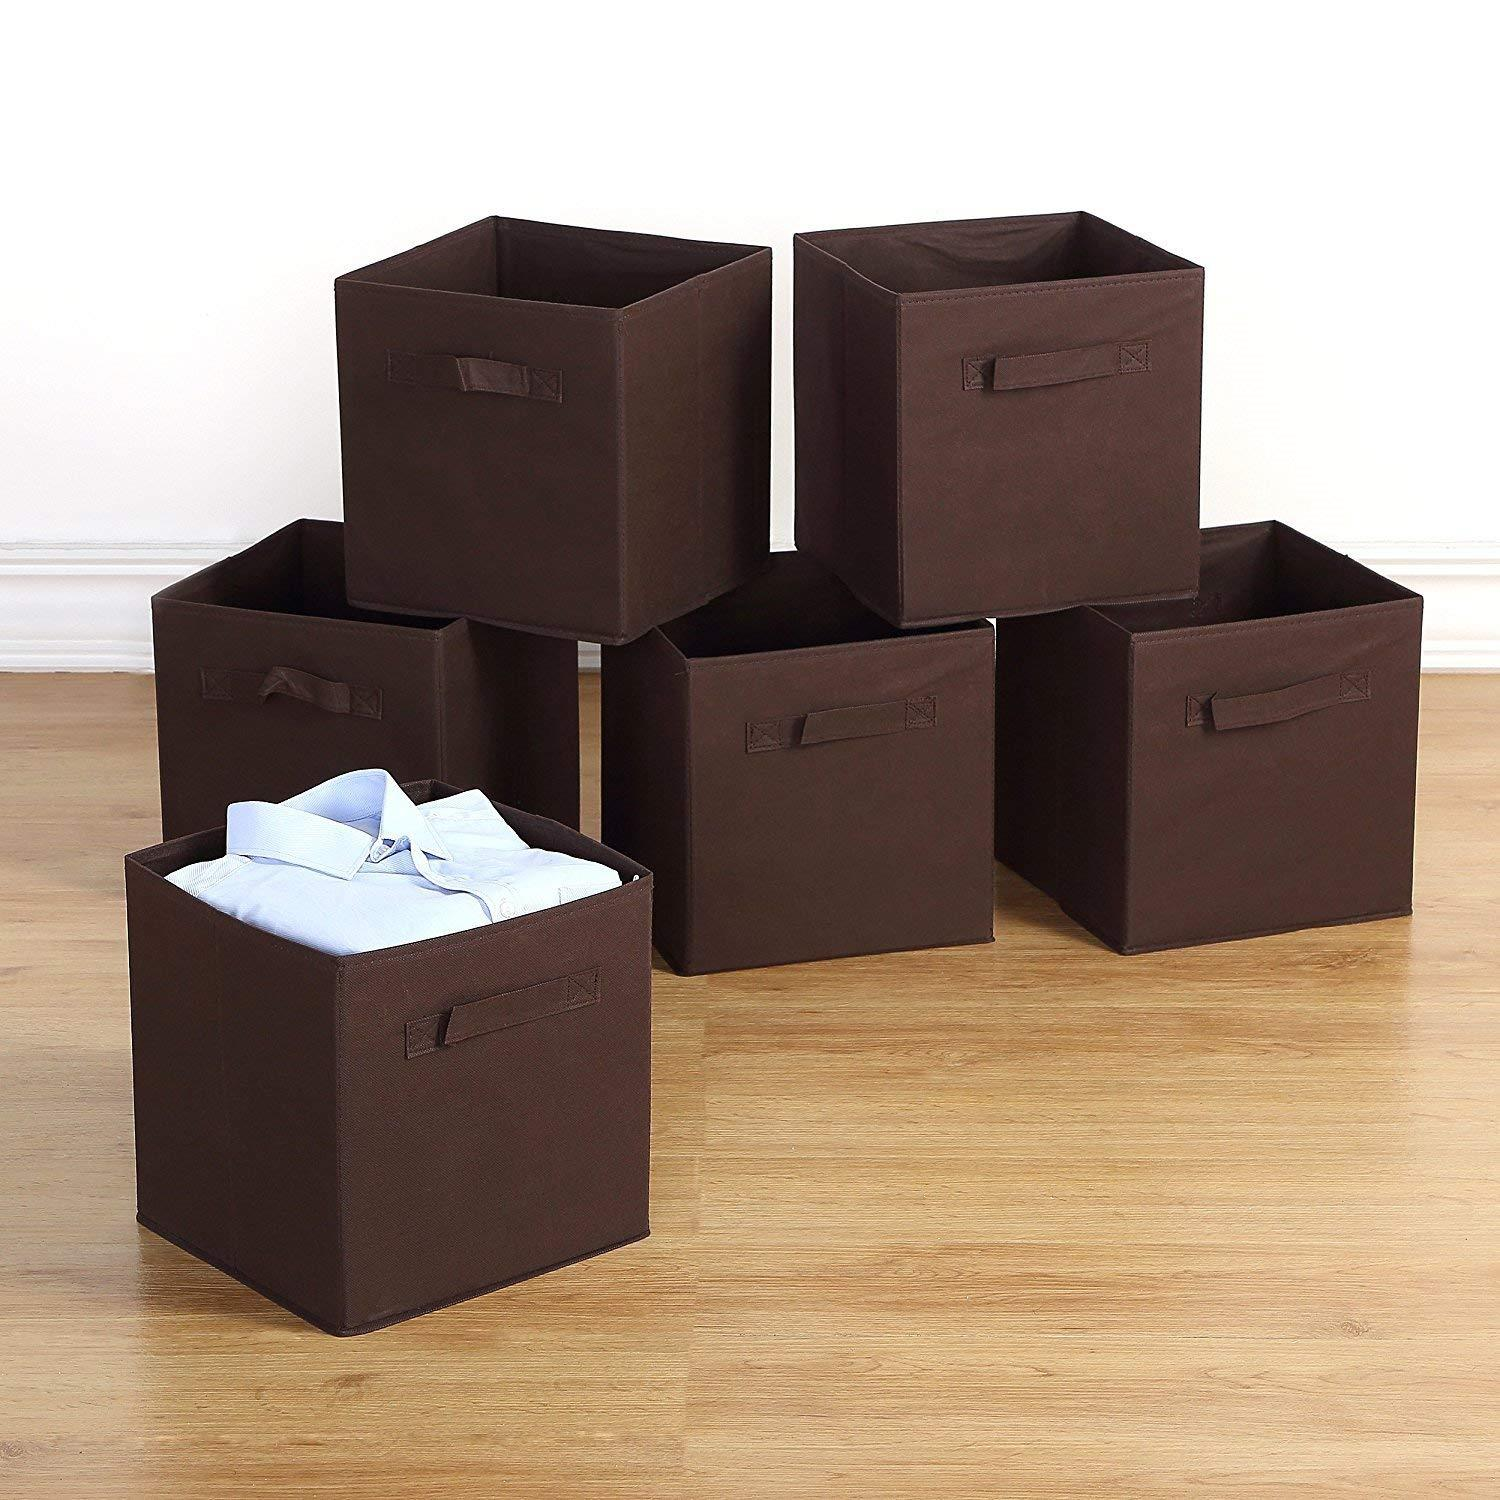 Ktaxon Storage Bins 6 Pack Collapsible Cloth Storage Baskets Durable Nonwoven Cube Basket Organizer Foldable Fabric Drawers